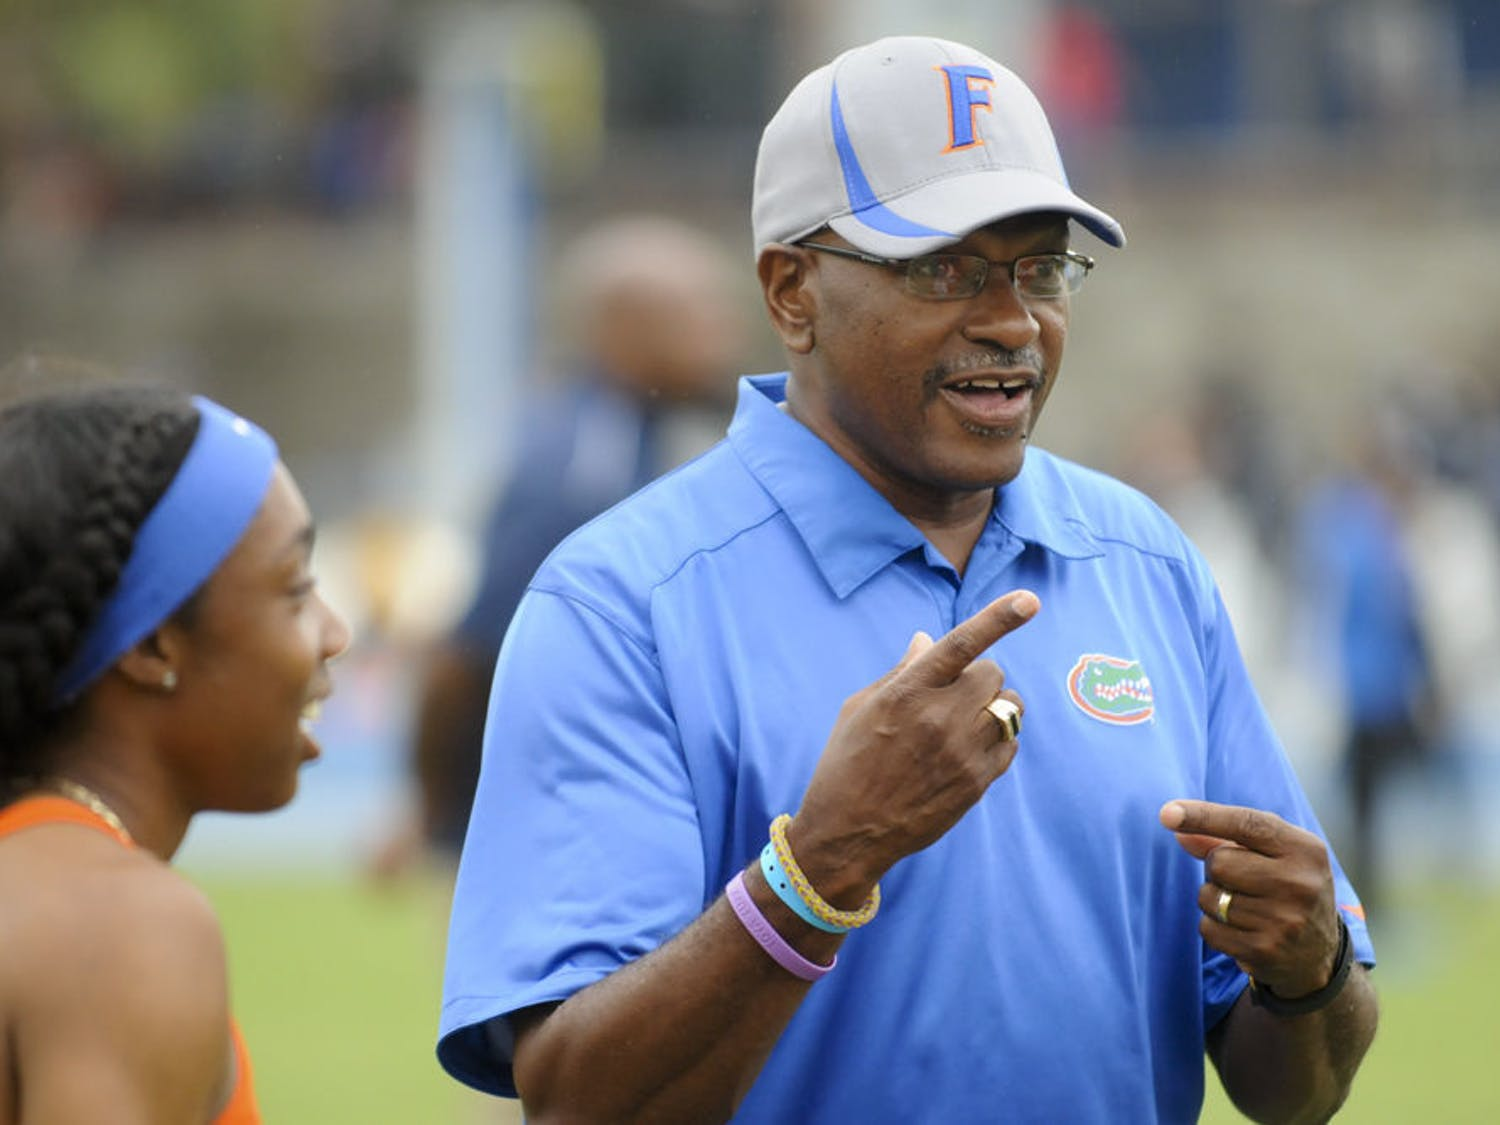 Coach Mike Holloway sent two Gators track athletes to compete Wednesday afternoon in Texas.